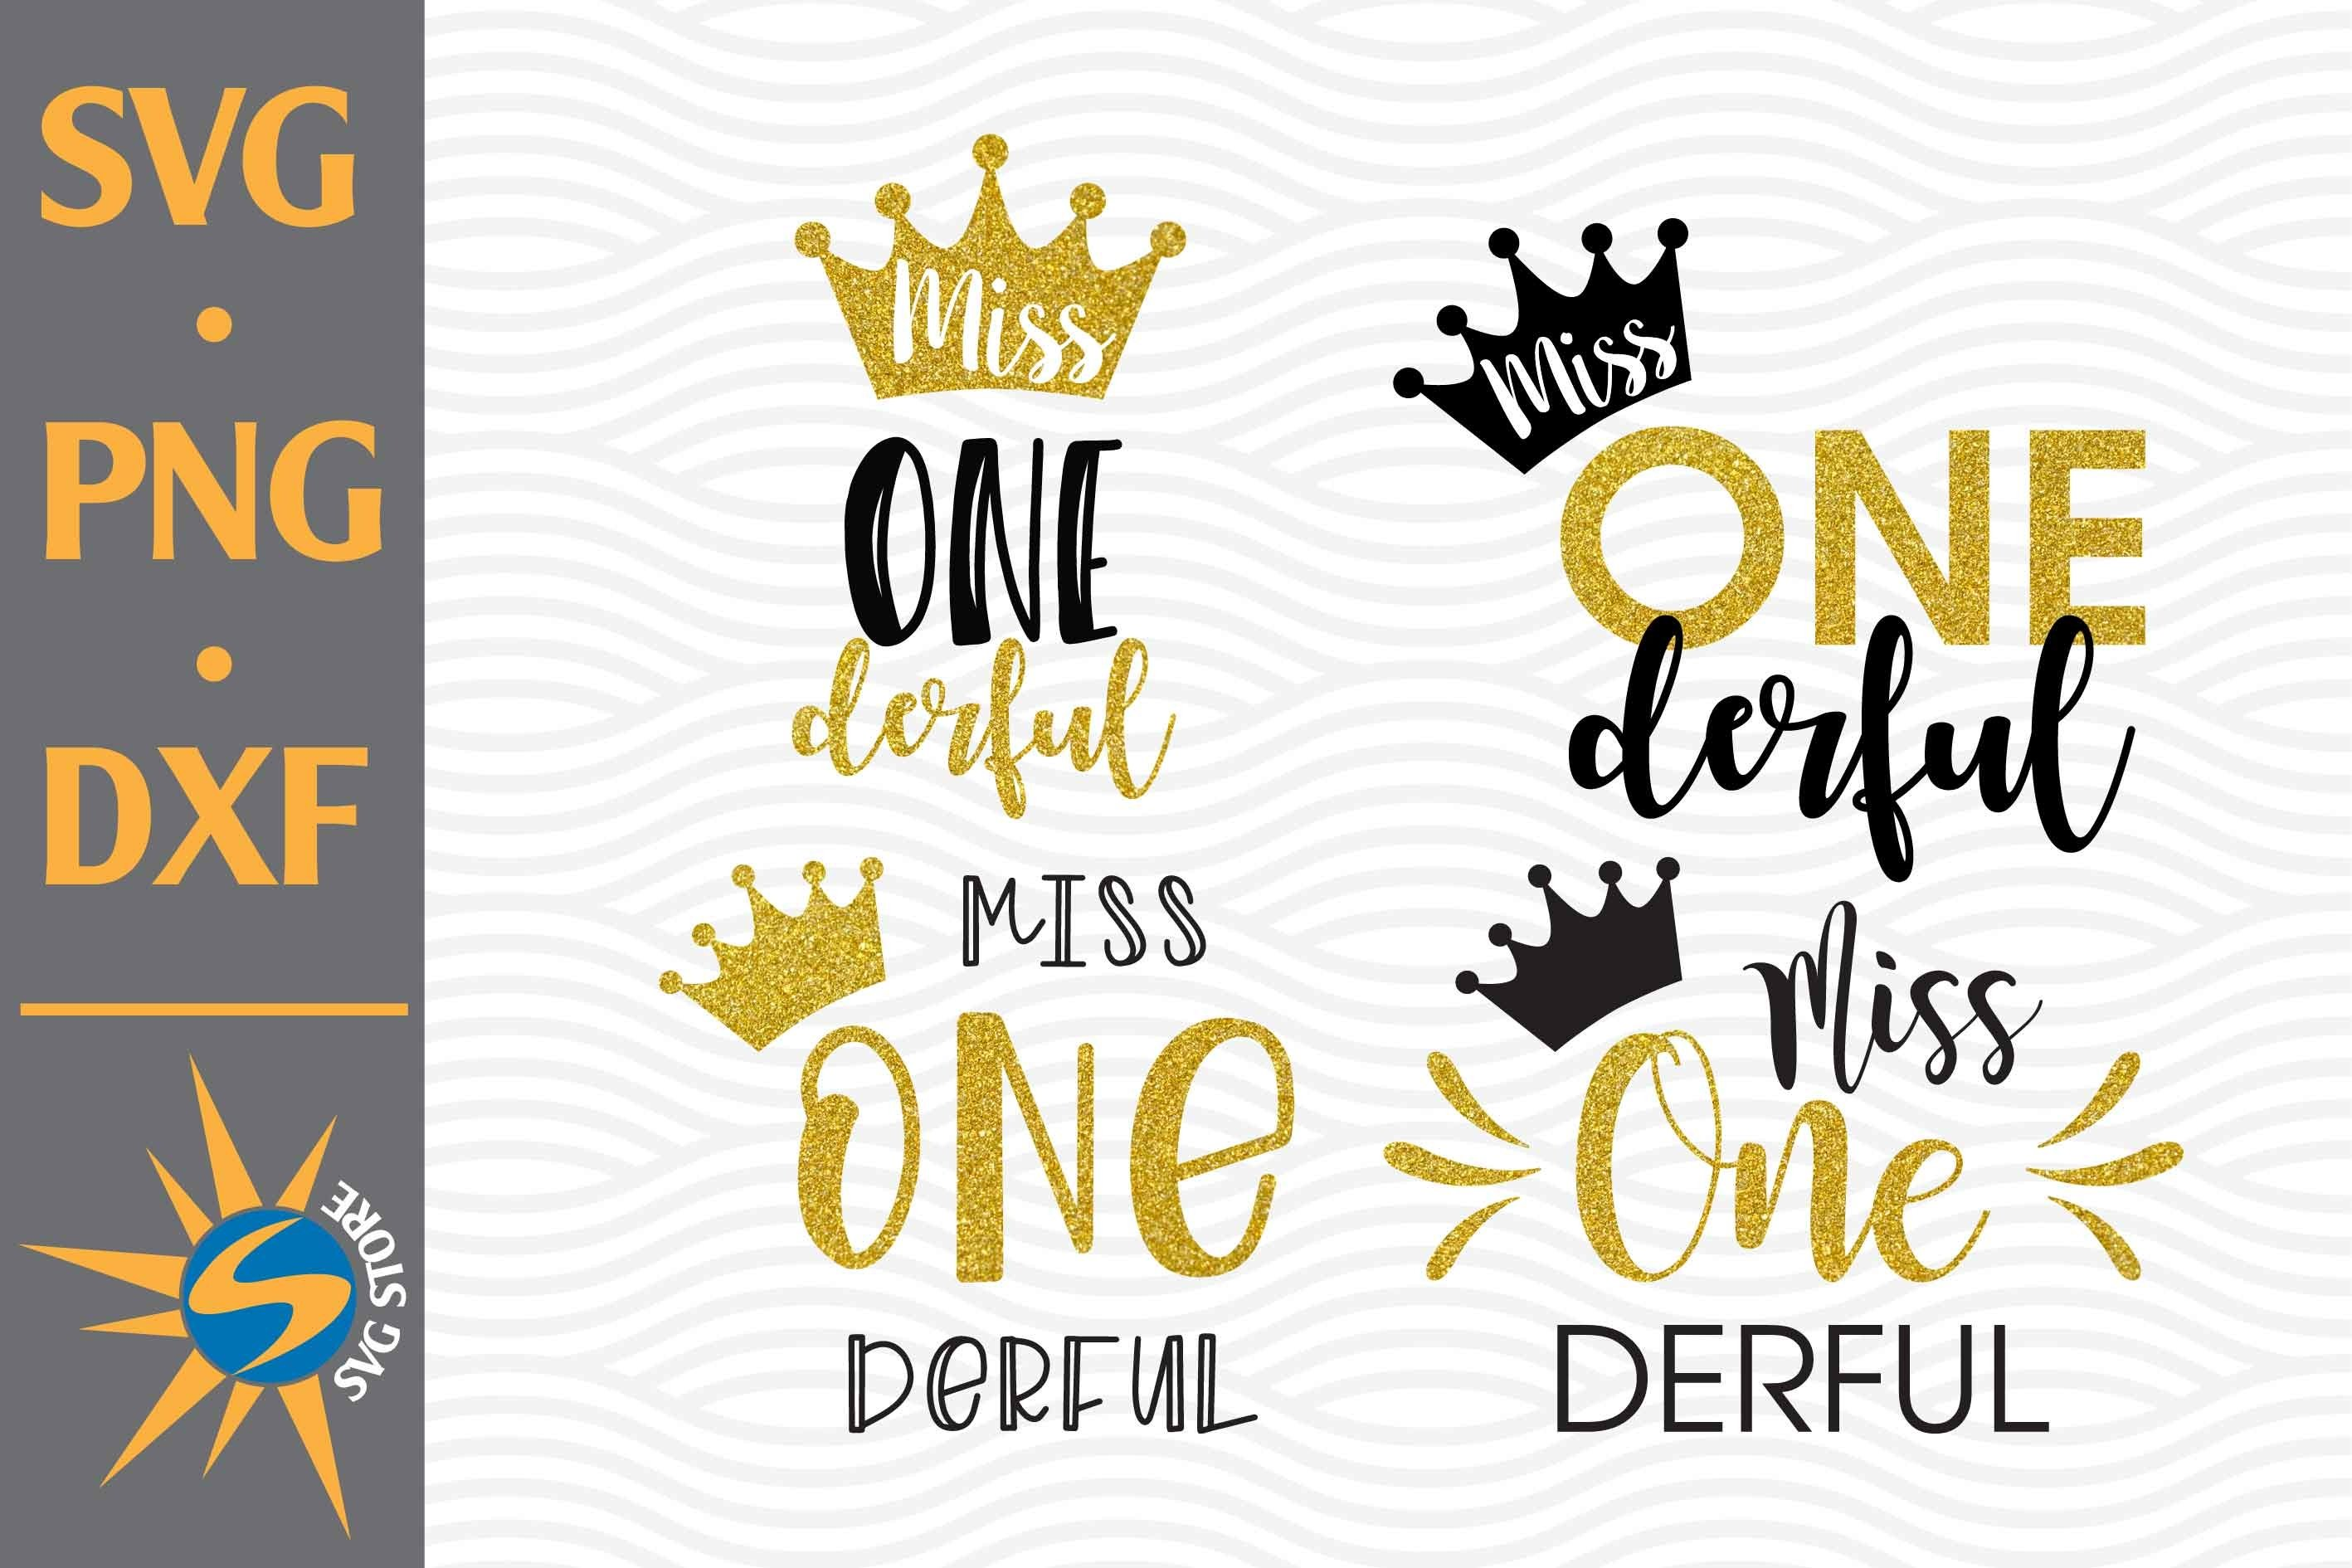 Miss Onederful Svg Png Dxf Digital Files Include 723563 Cut Files Design Bundles